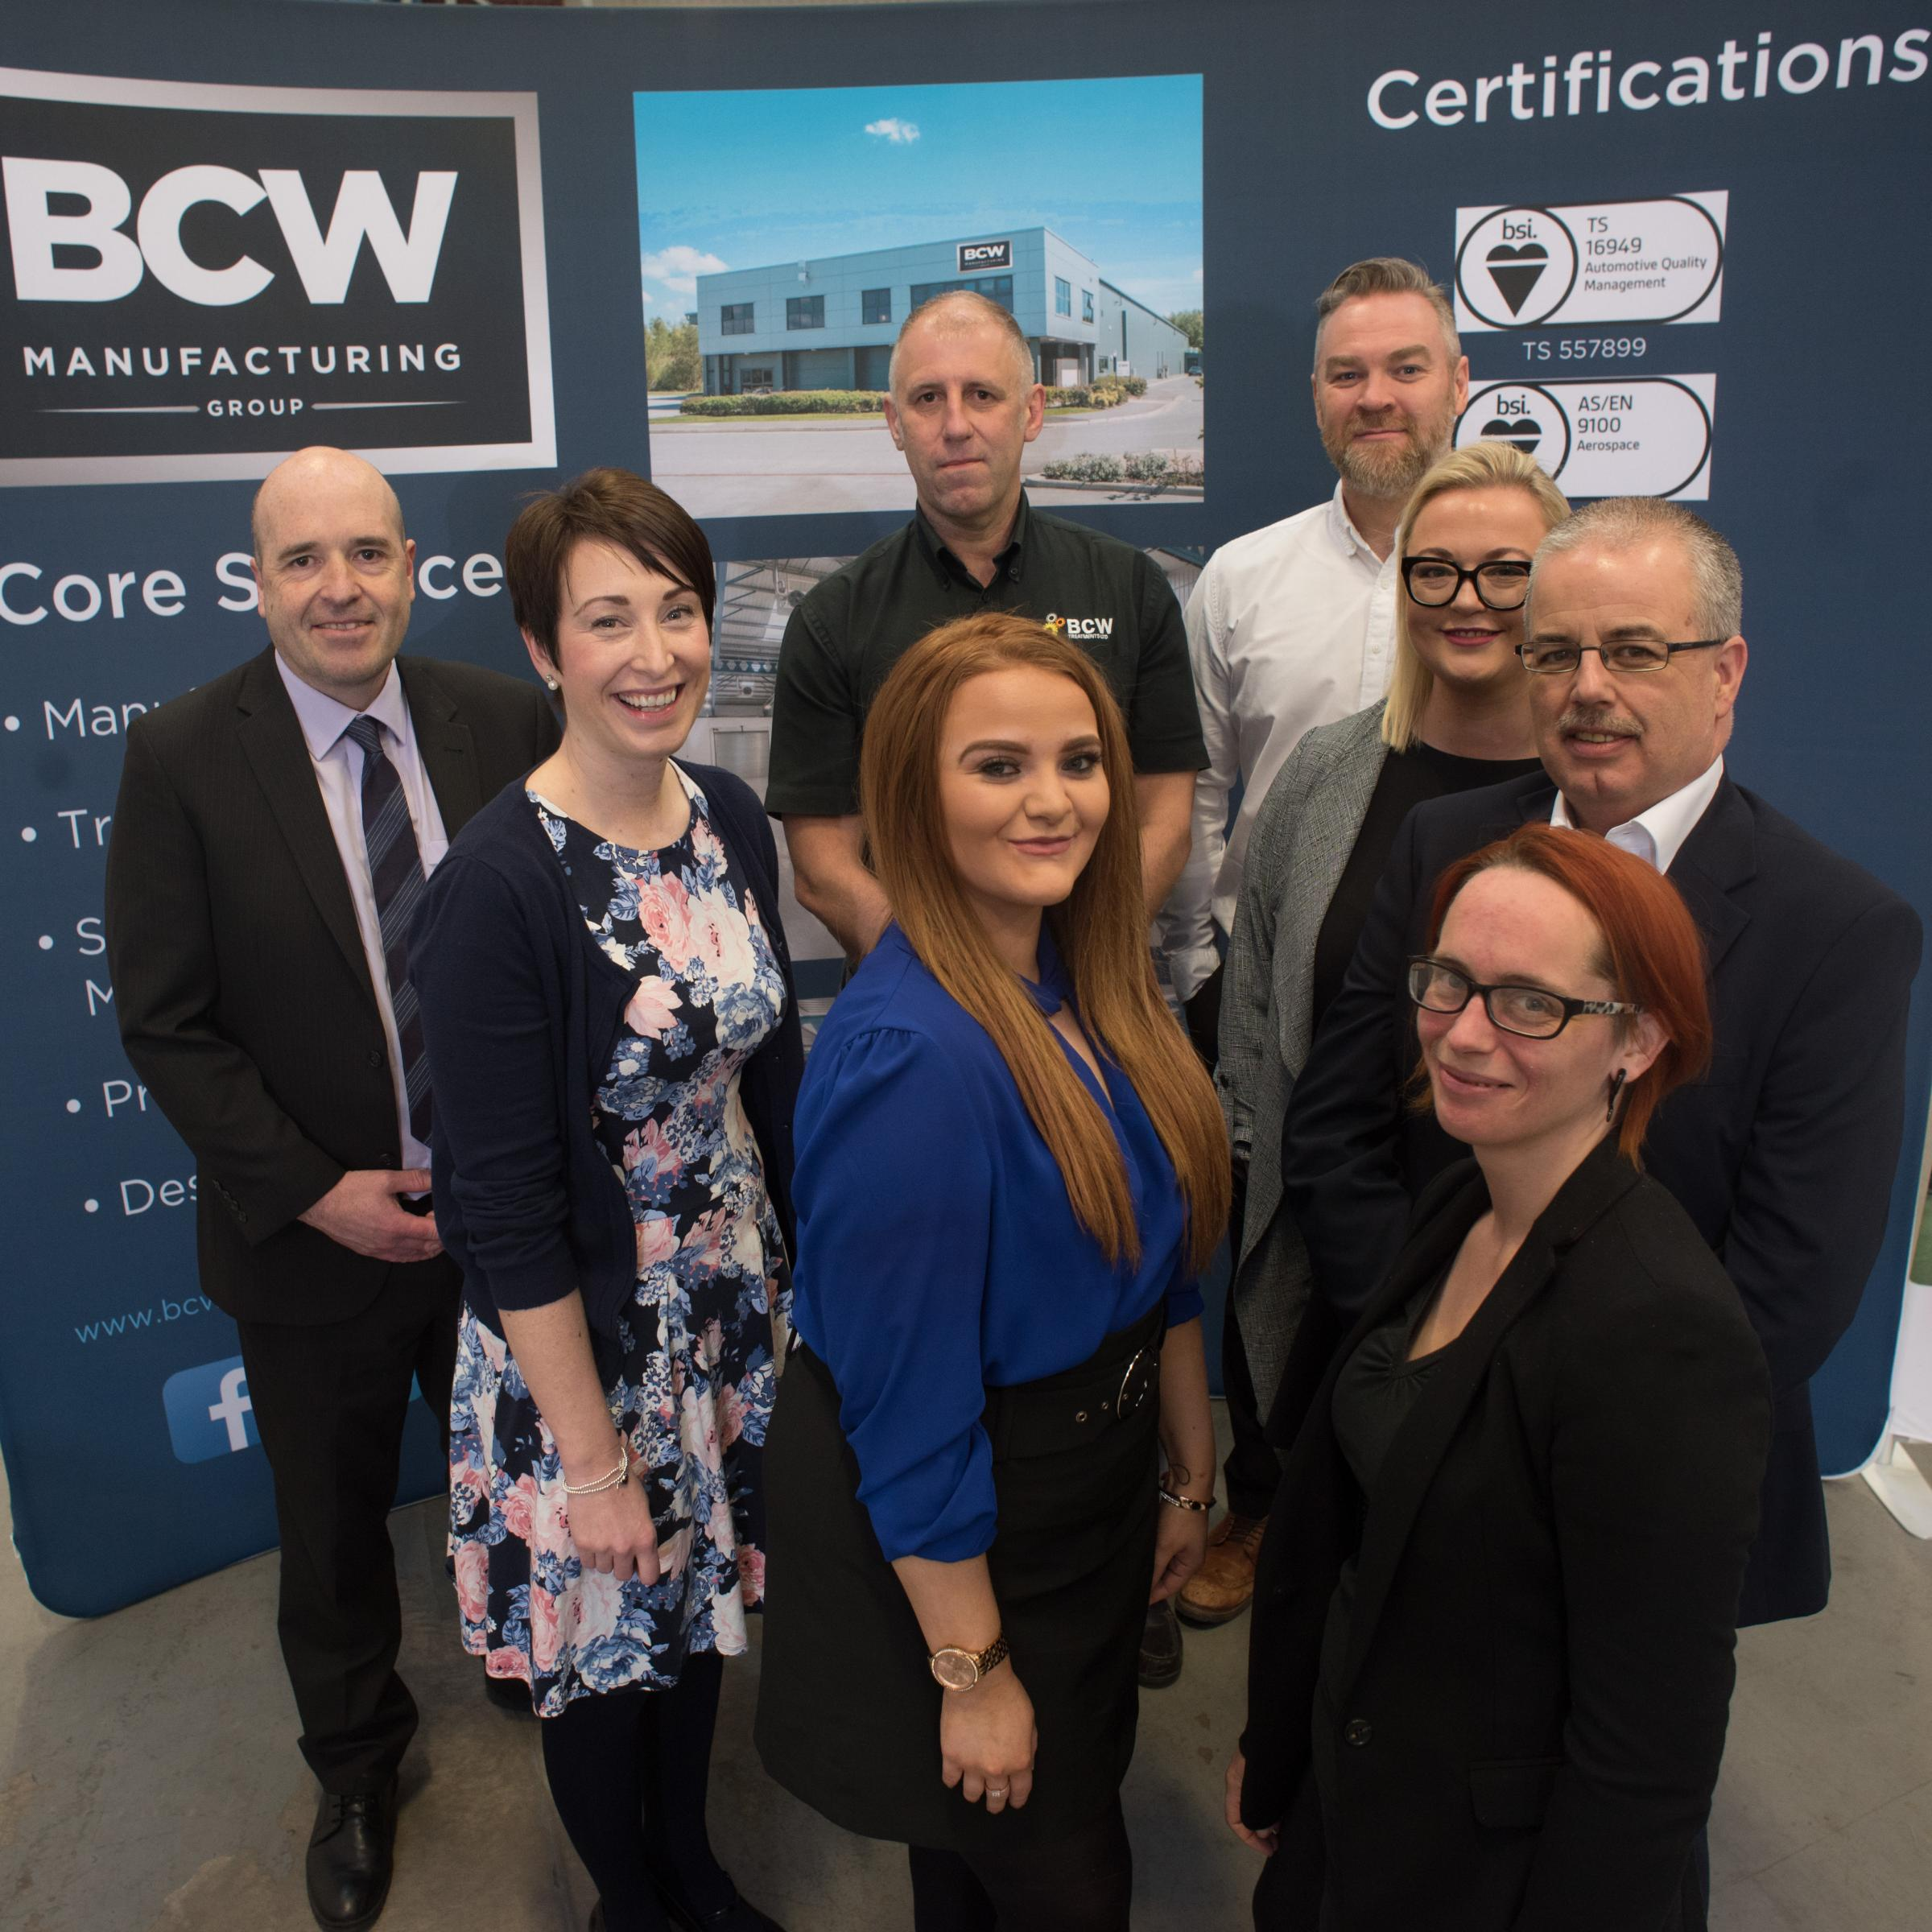 Representatives from the BCW Engineering team at the expansion announcement event